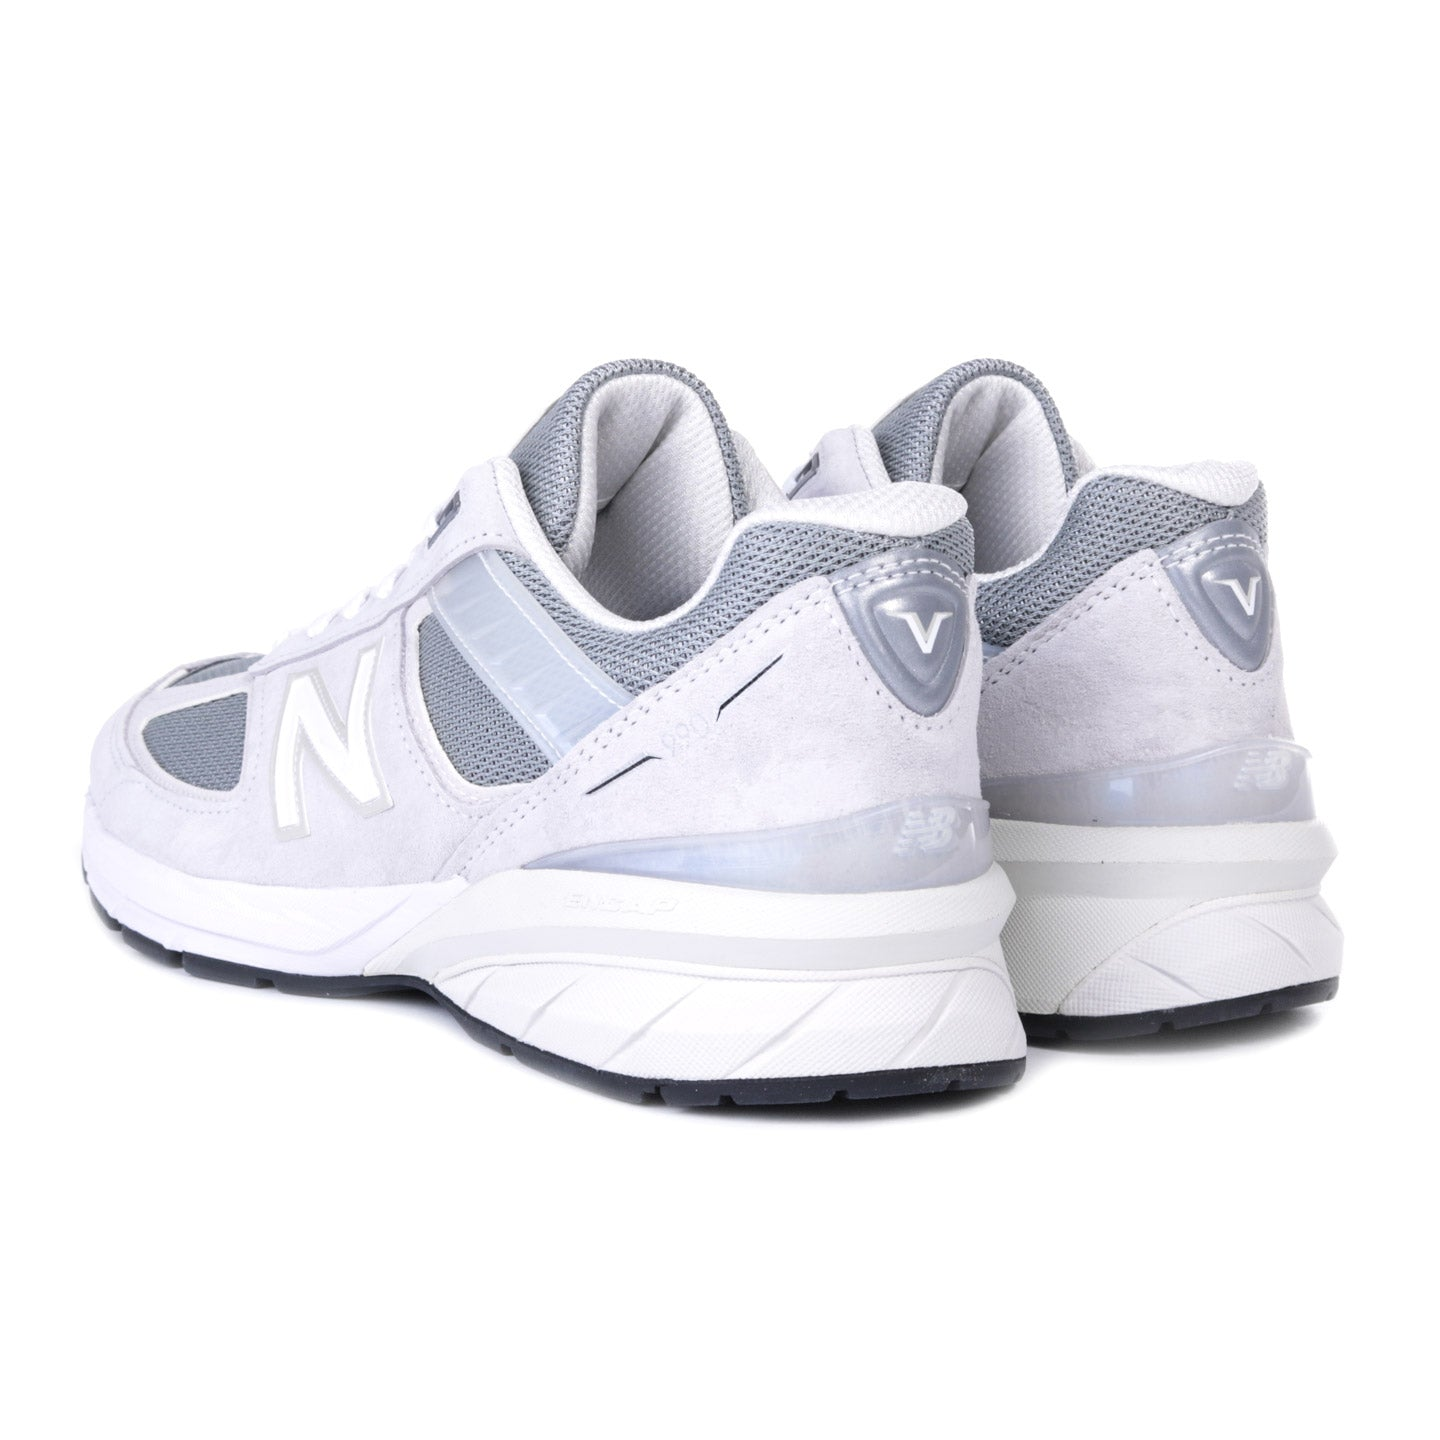 NEW BALANCE 990V5 MIUSA NIMBUS CLOUD